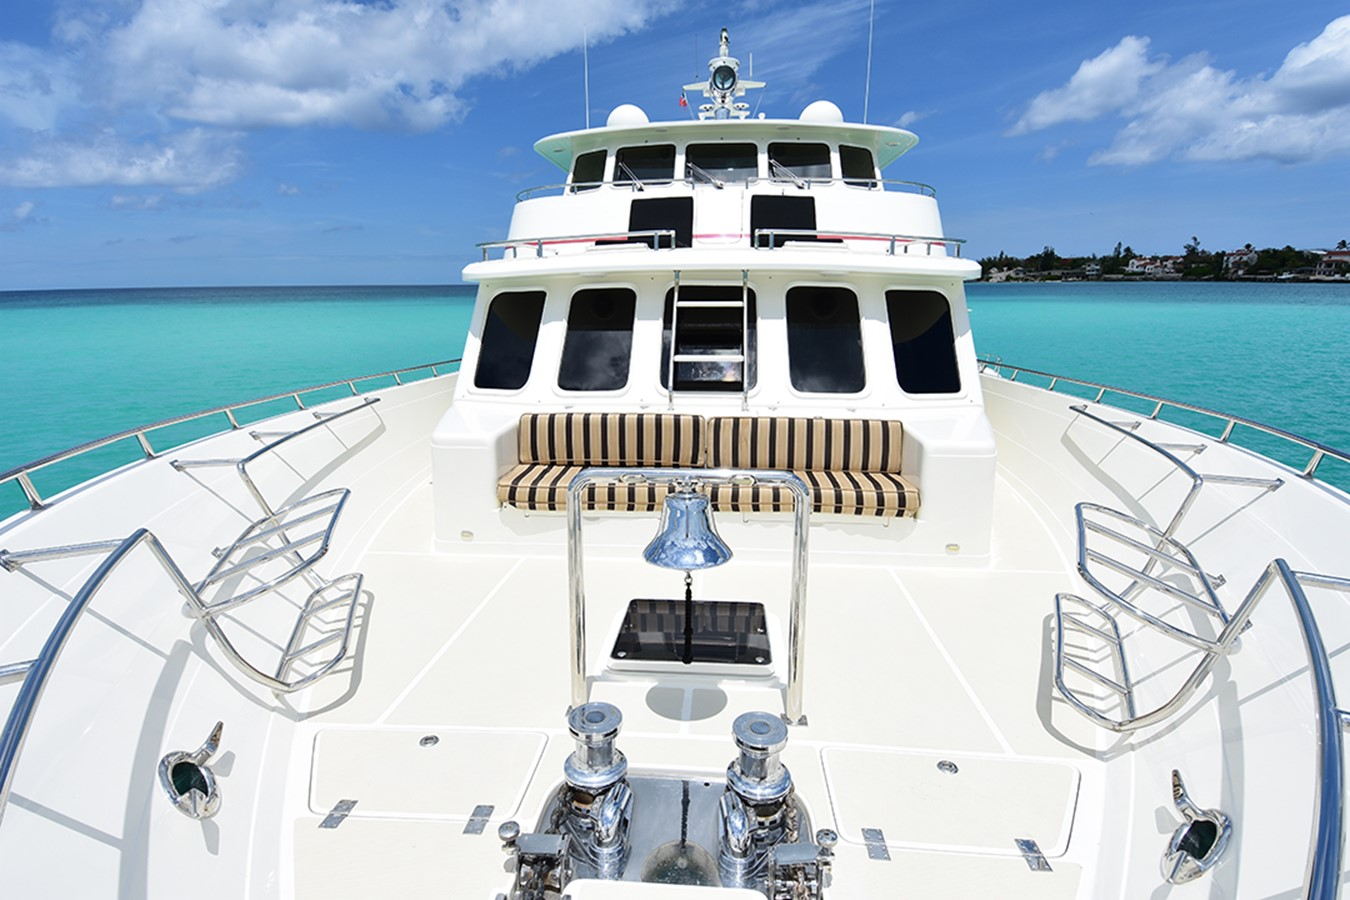 Foredeck 2007 OFFSHORE YACHTS Voyager Motor Yacht 2533912